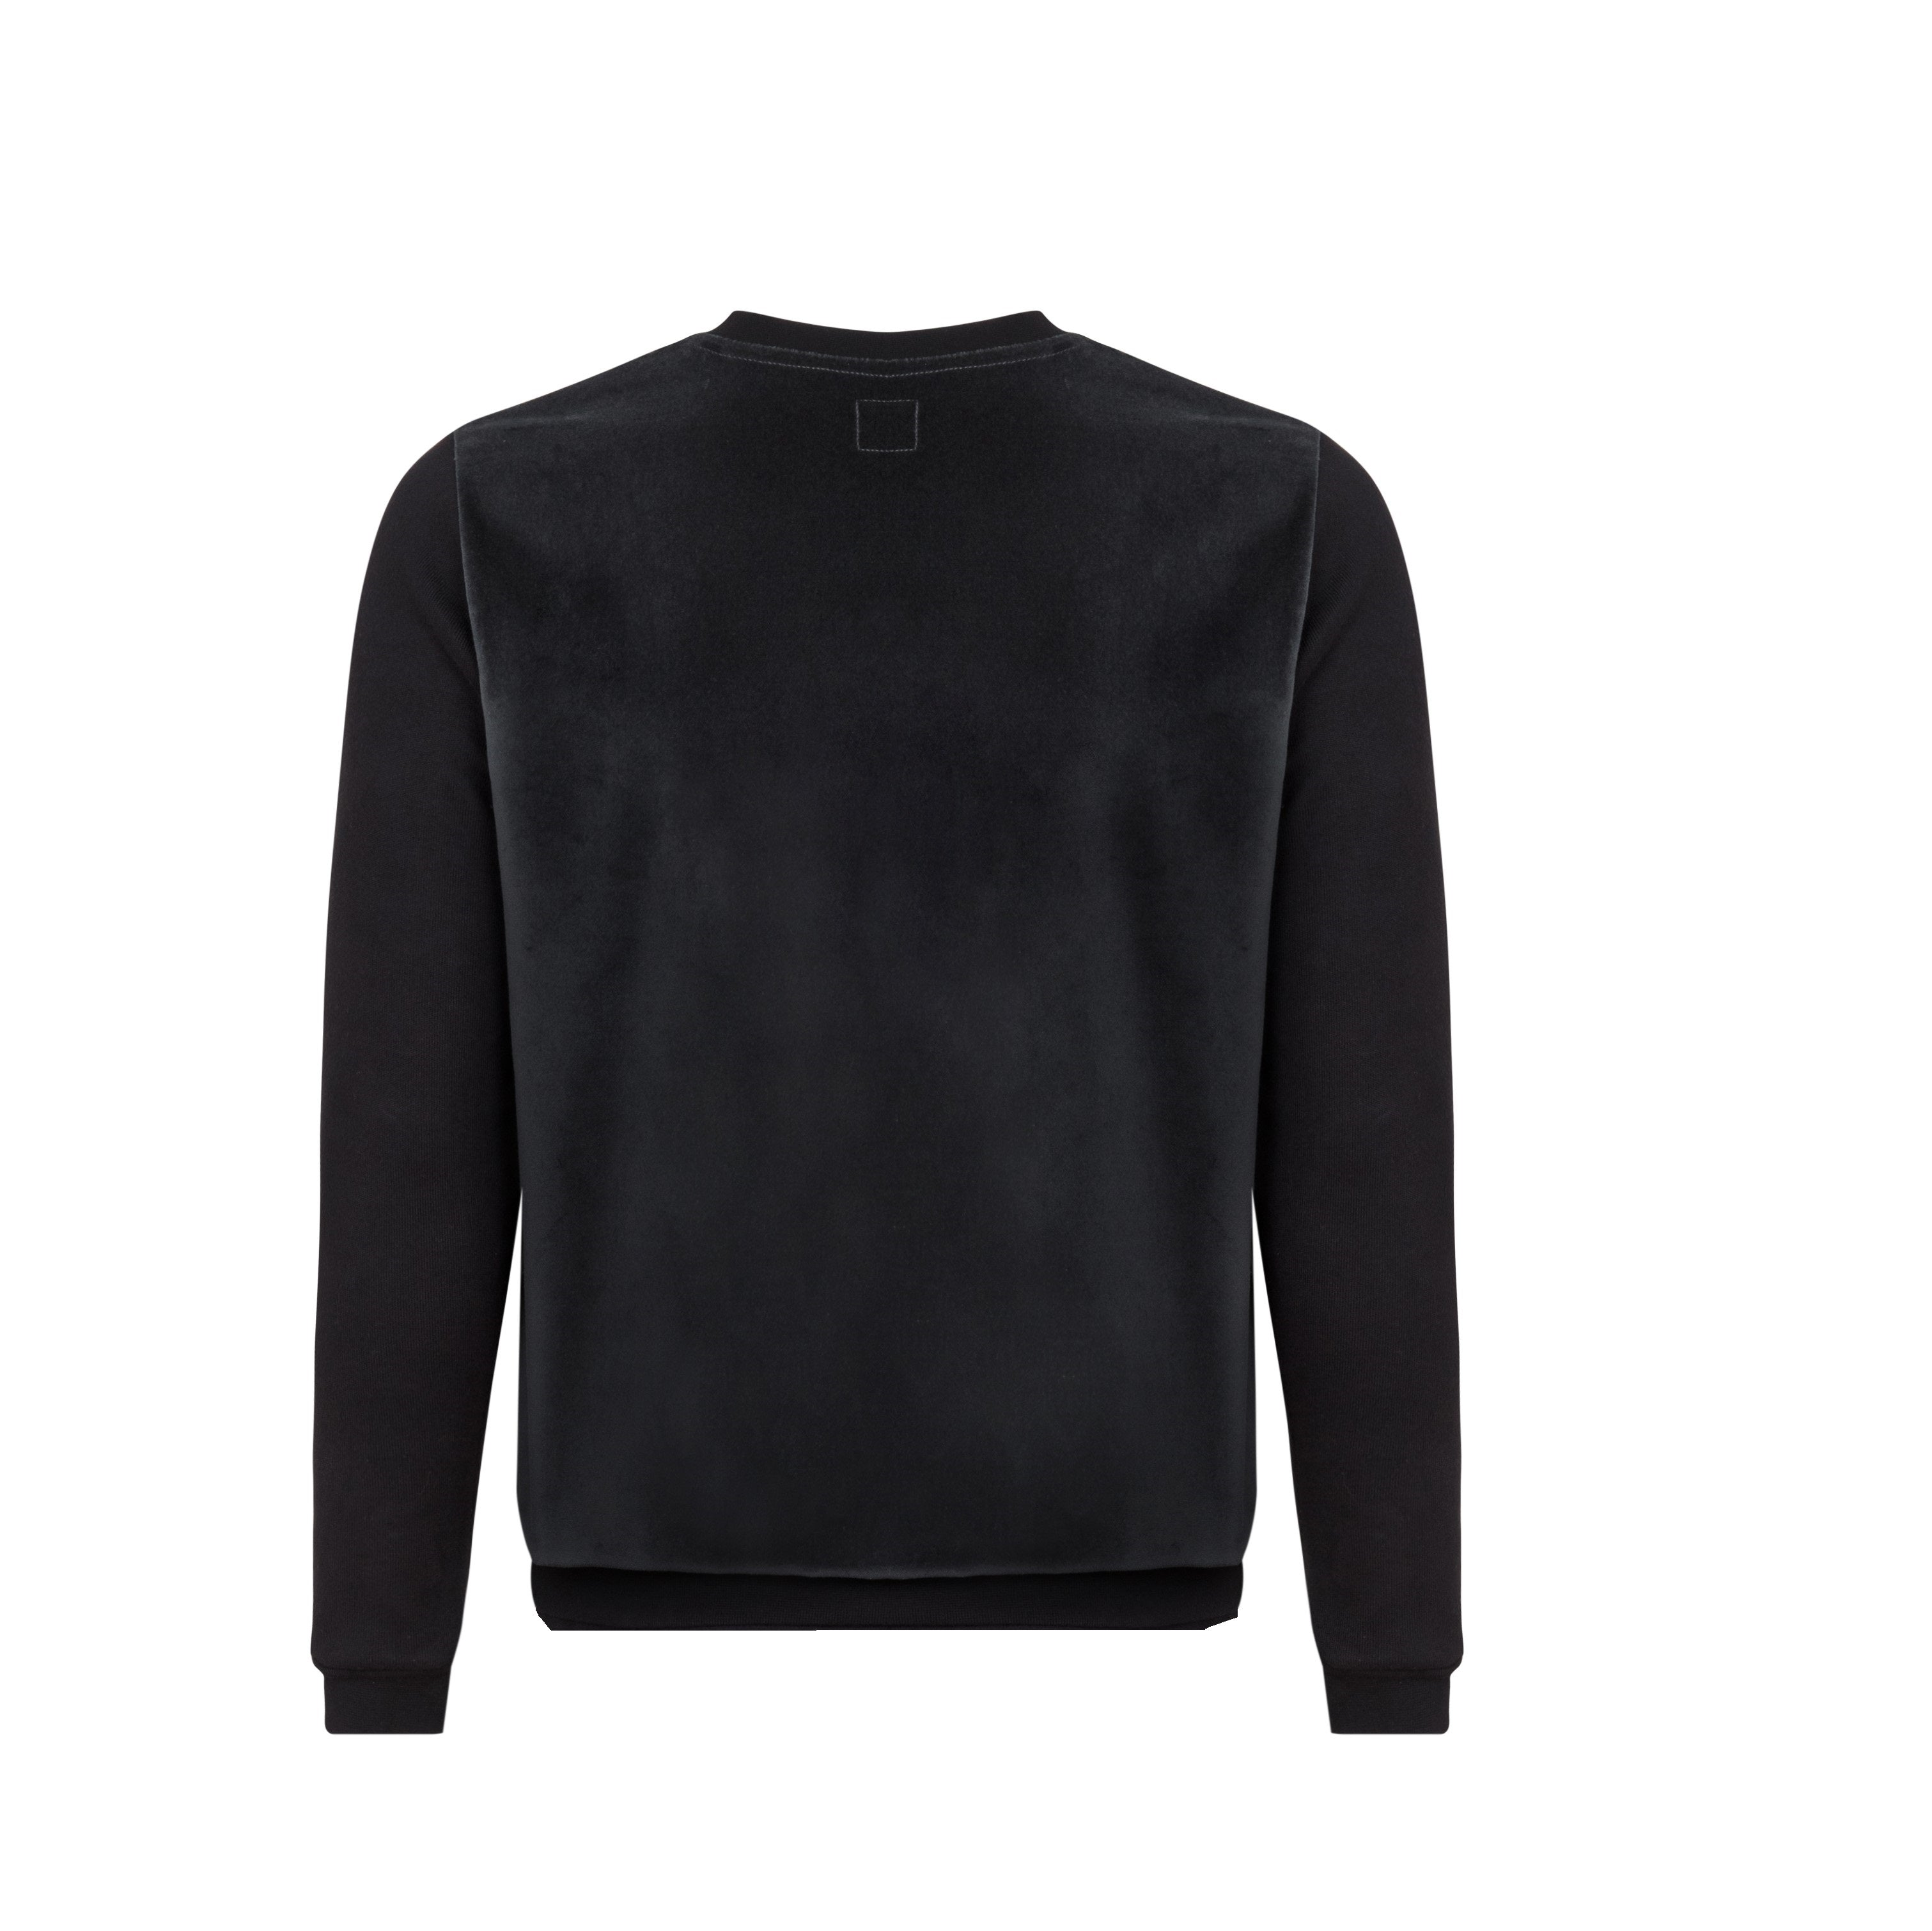 Black Cotton Cashmere Sweater by Tress Clothing on OOSTOR.com